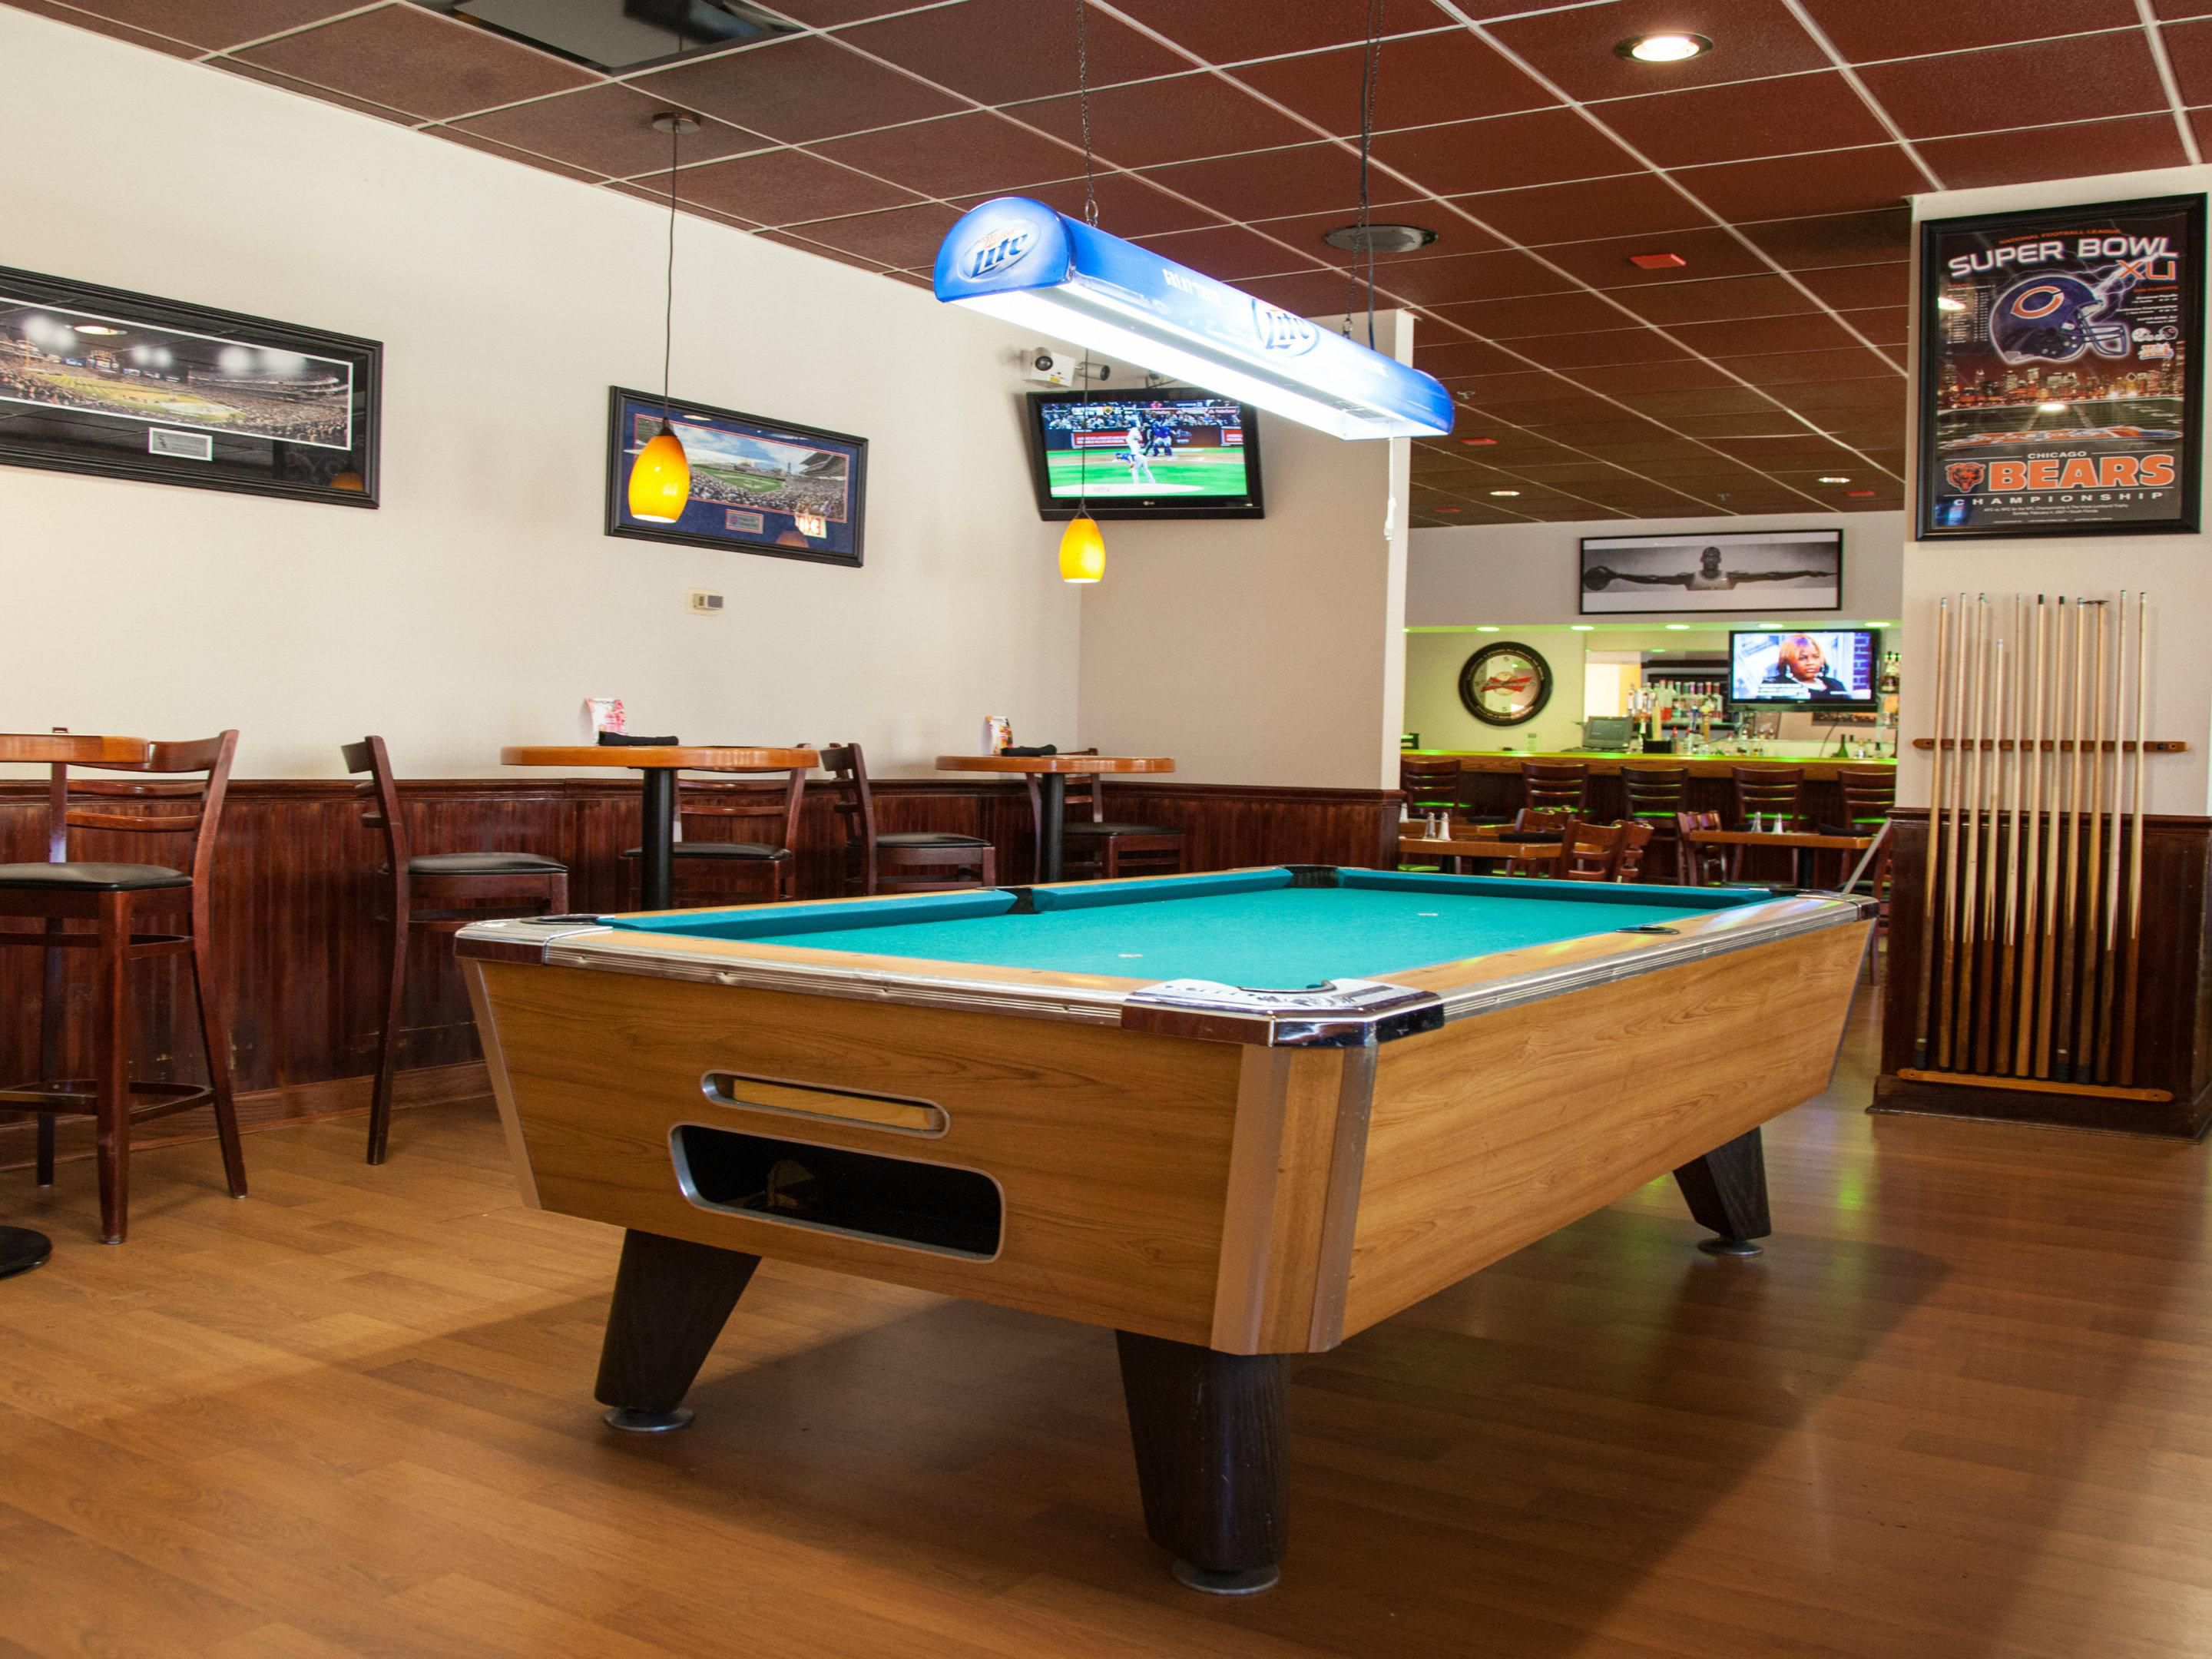 Relaxing game of pool at Sunny's Bar and Grill